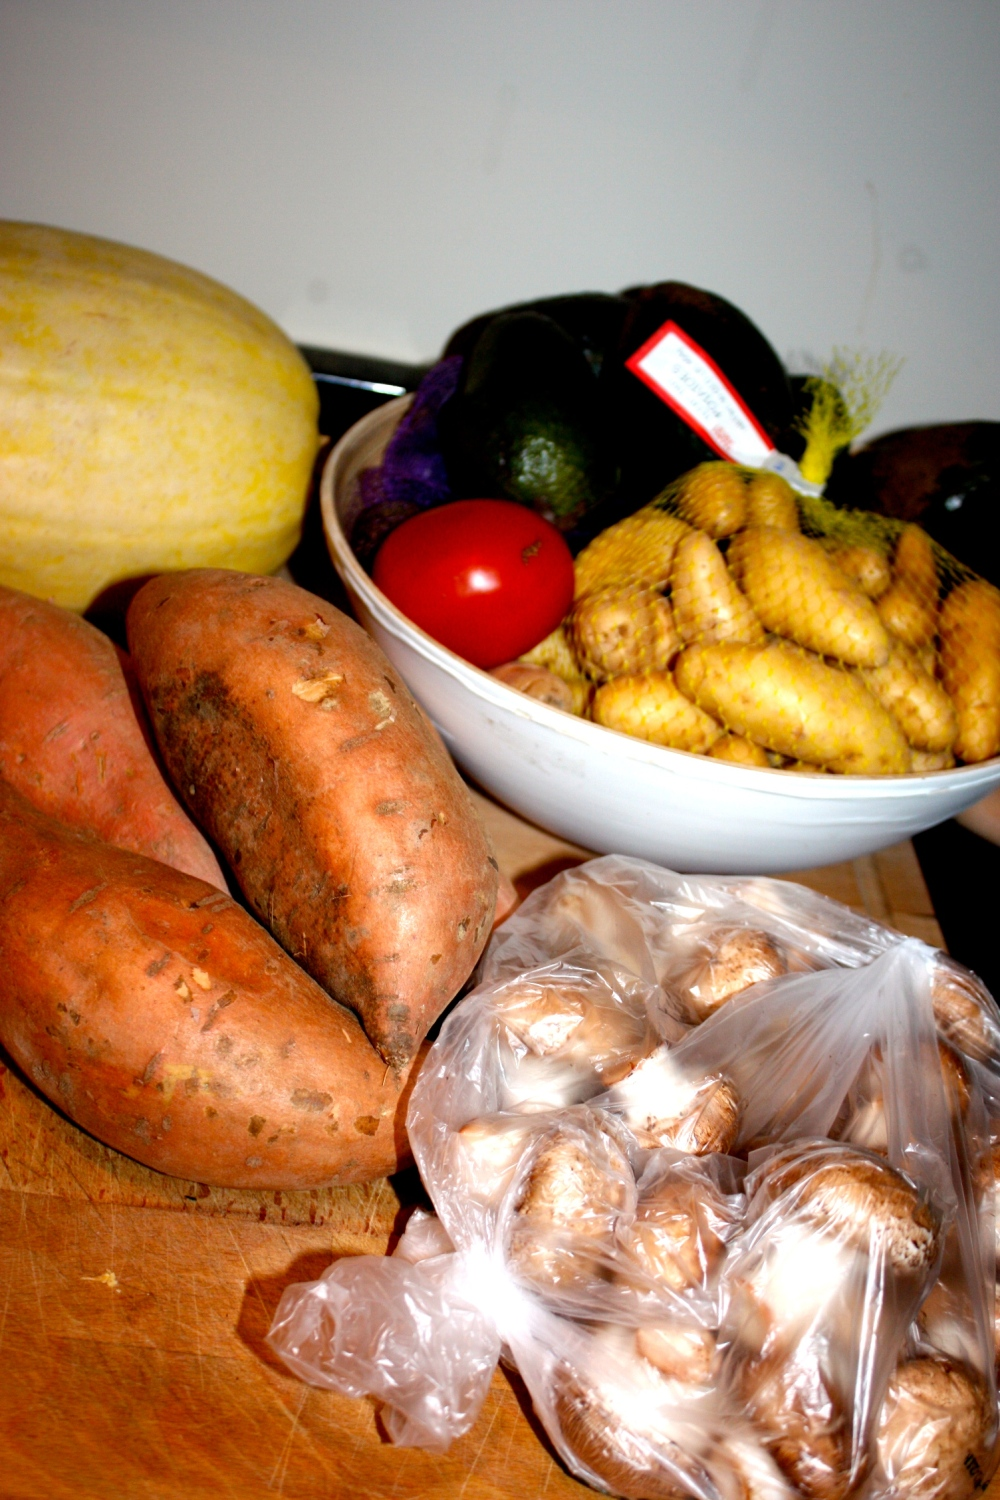 sweet potatoes, fingerling potatoes, 6 avocados, bella mushrooms